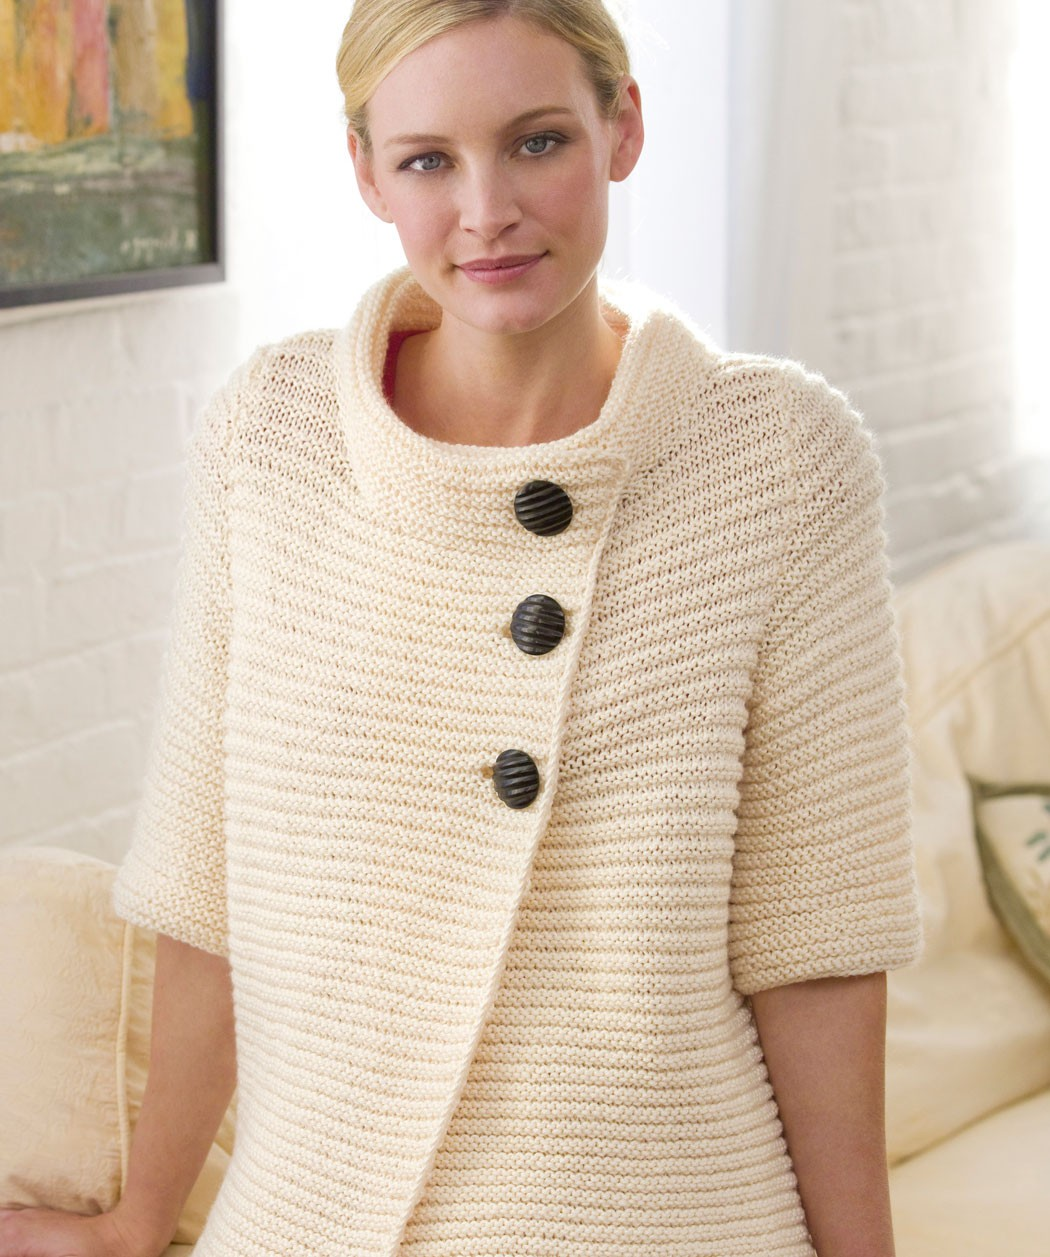 Knitting Patterns For Cardigans : Knitted Sweater Patterns for Women A Knitting Blog